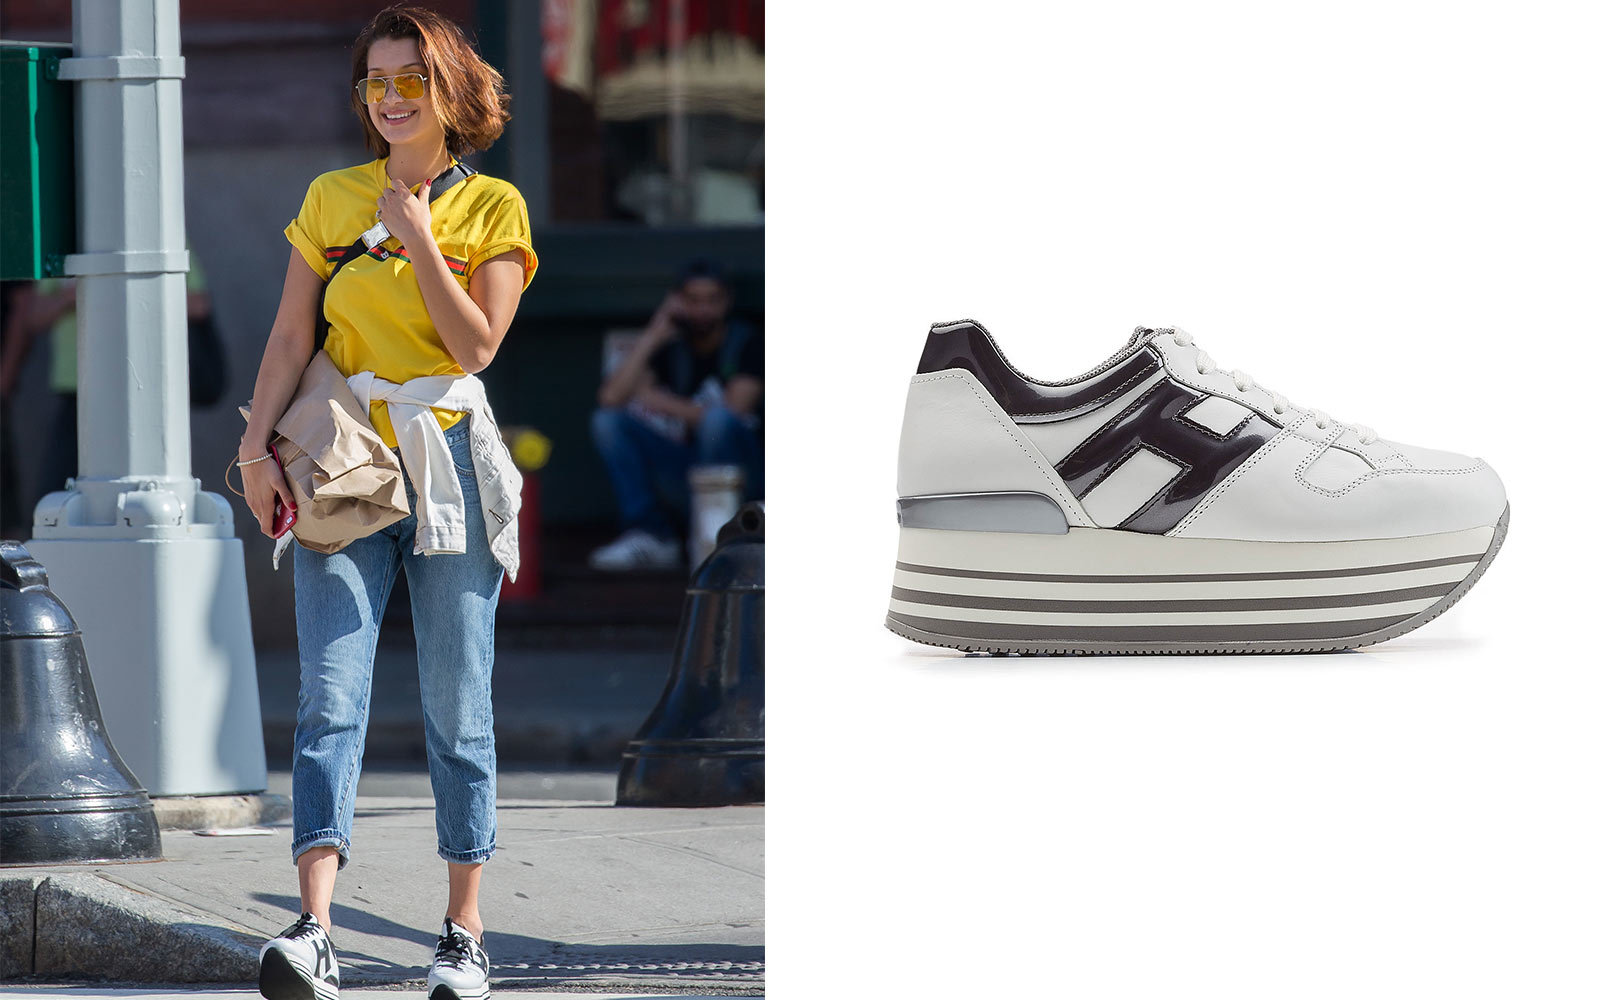 64e8b3a0 14 Sneakers Celebrities Love to Wear on the Go | Travel + Leisure